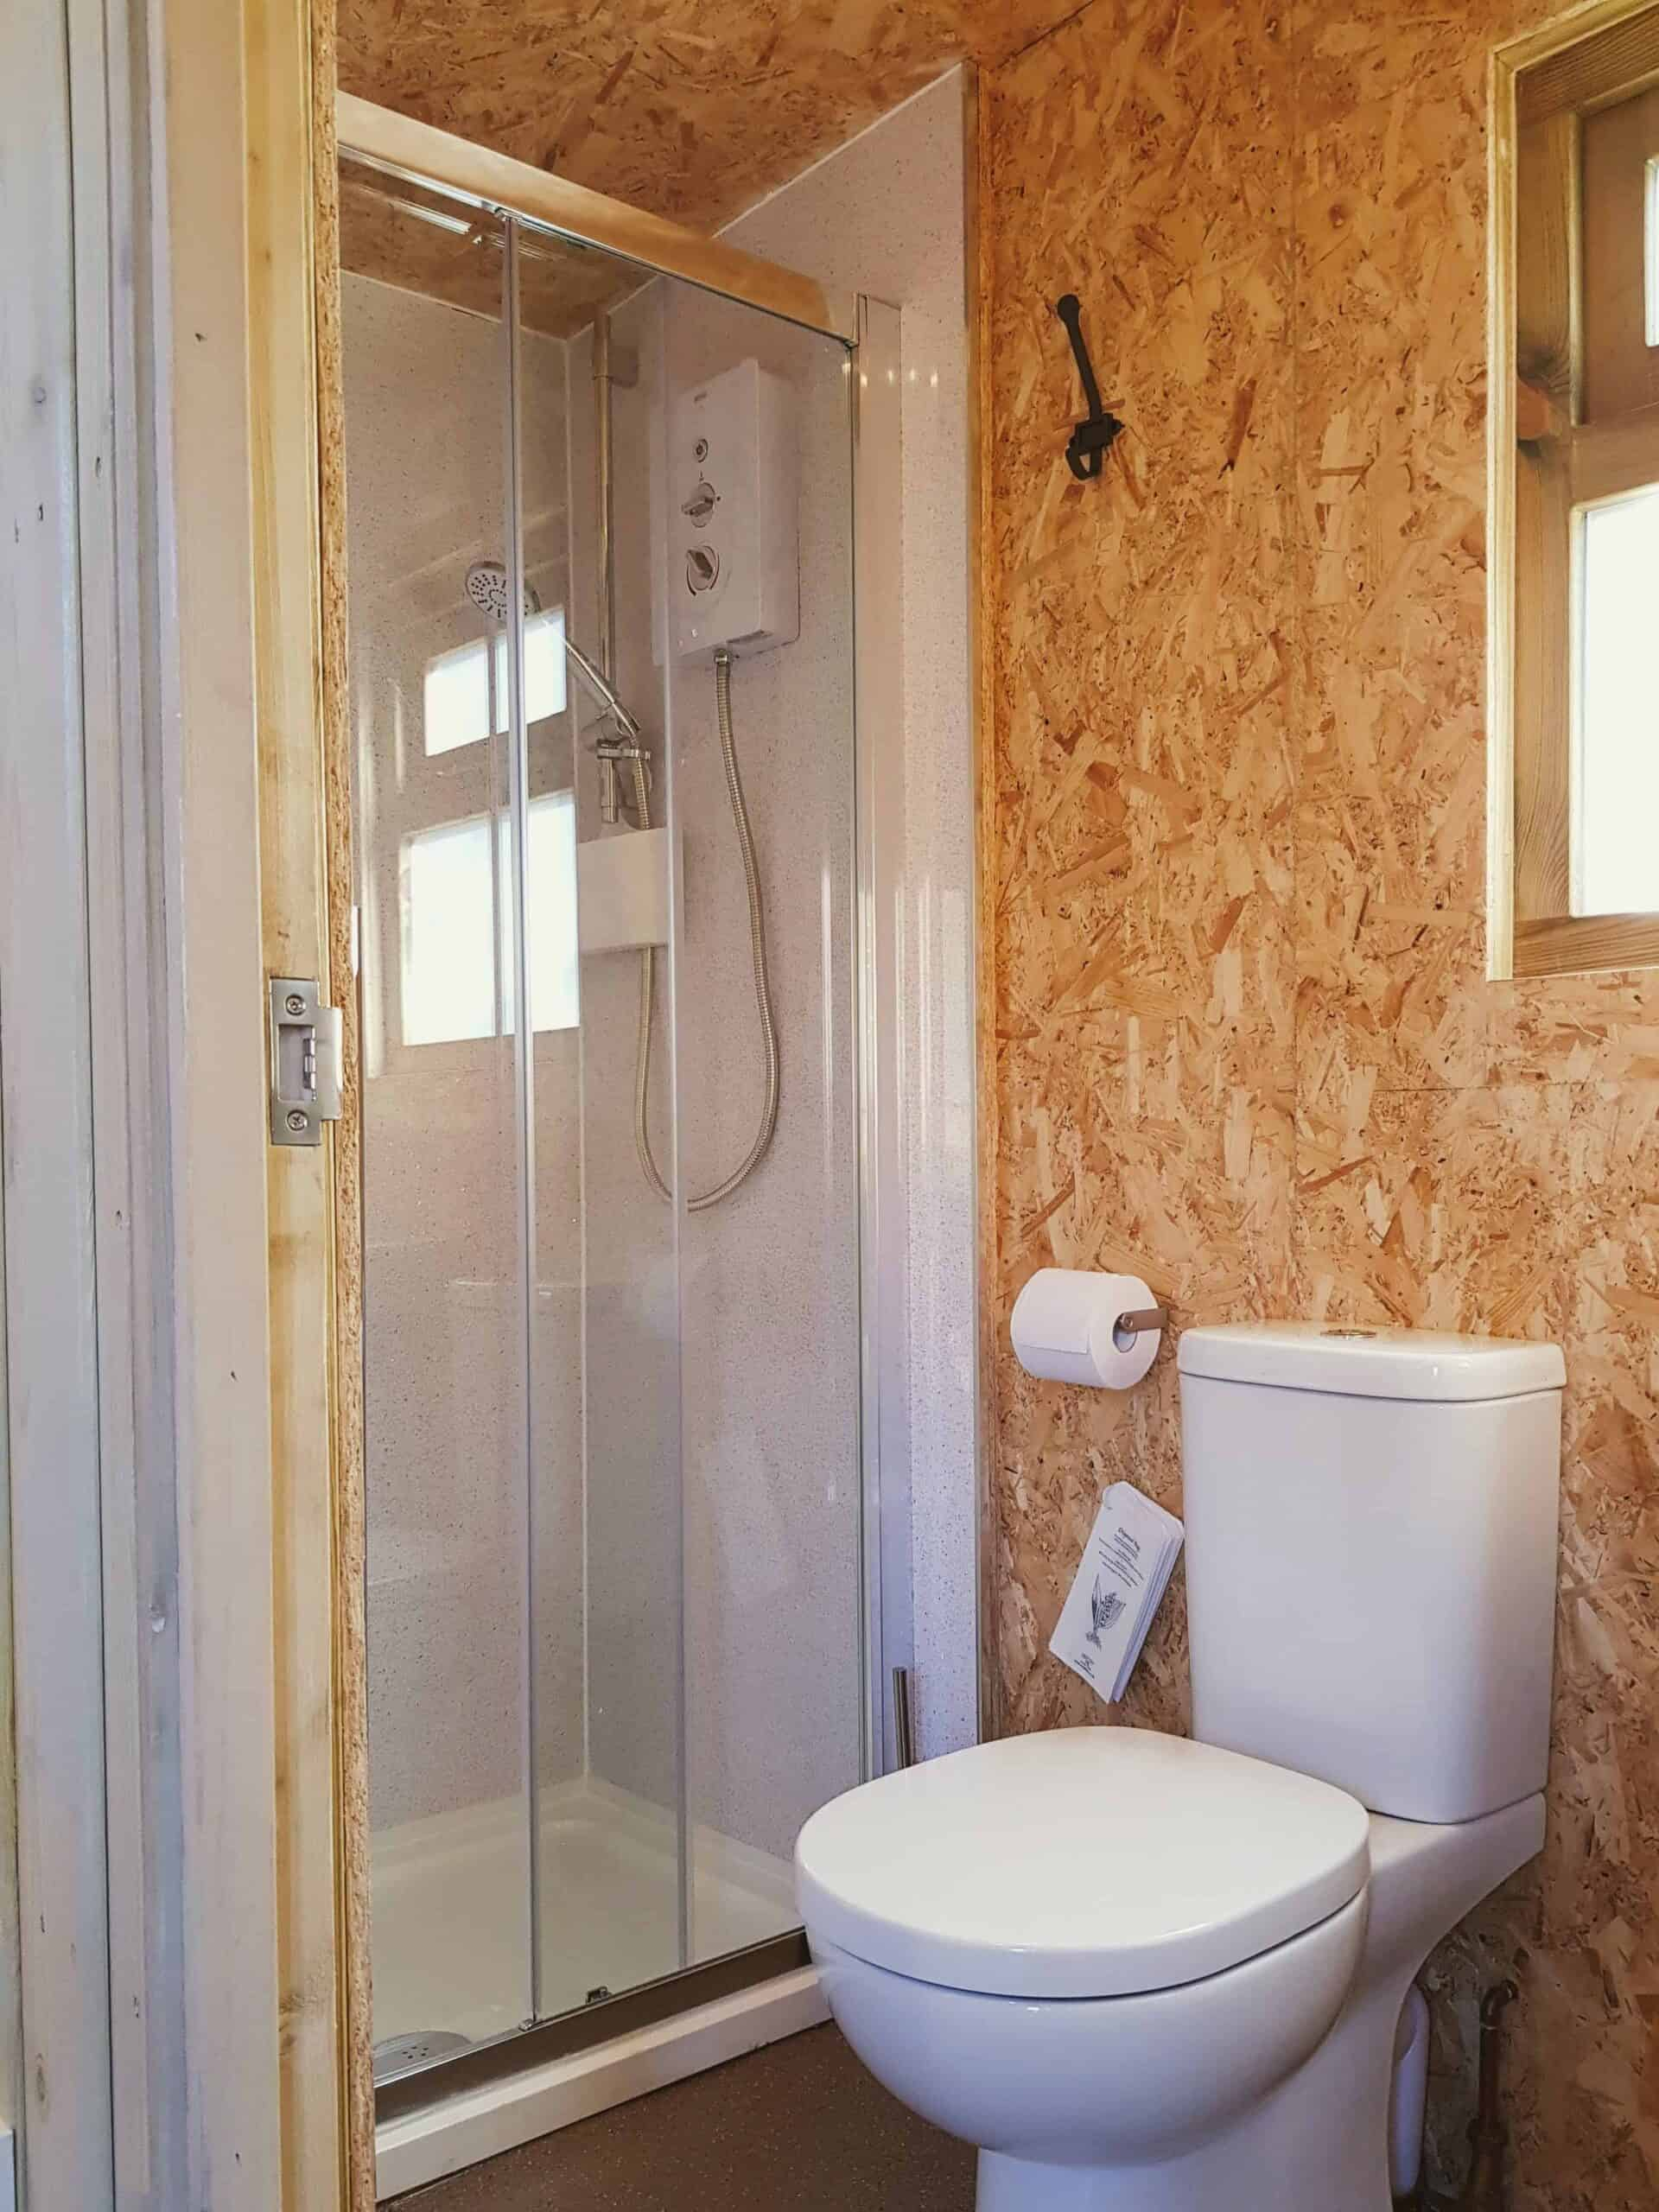 Cabin ensuite with electric shower and toilet